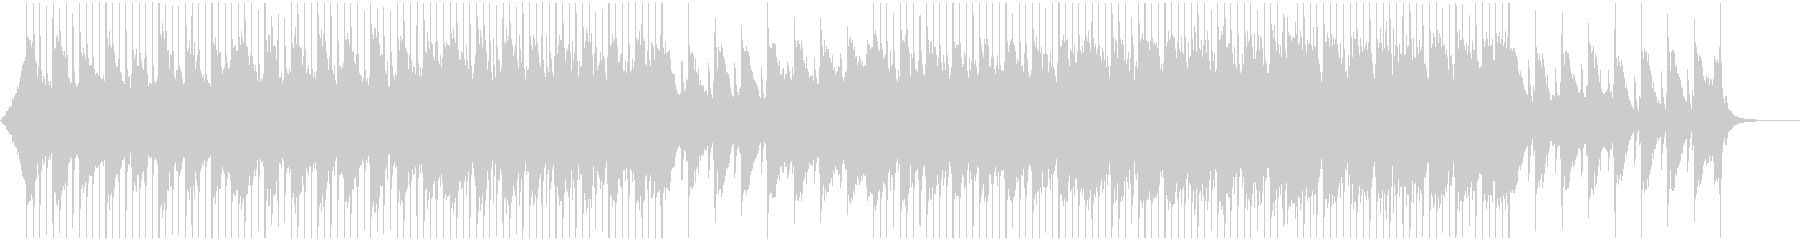 6 for companies! Piano cord that does not disturb the image's unreproduced waveform